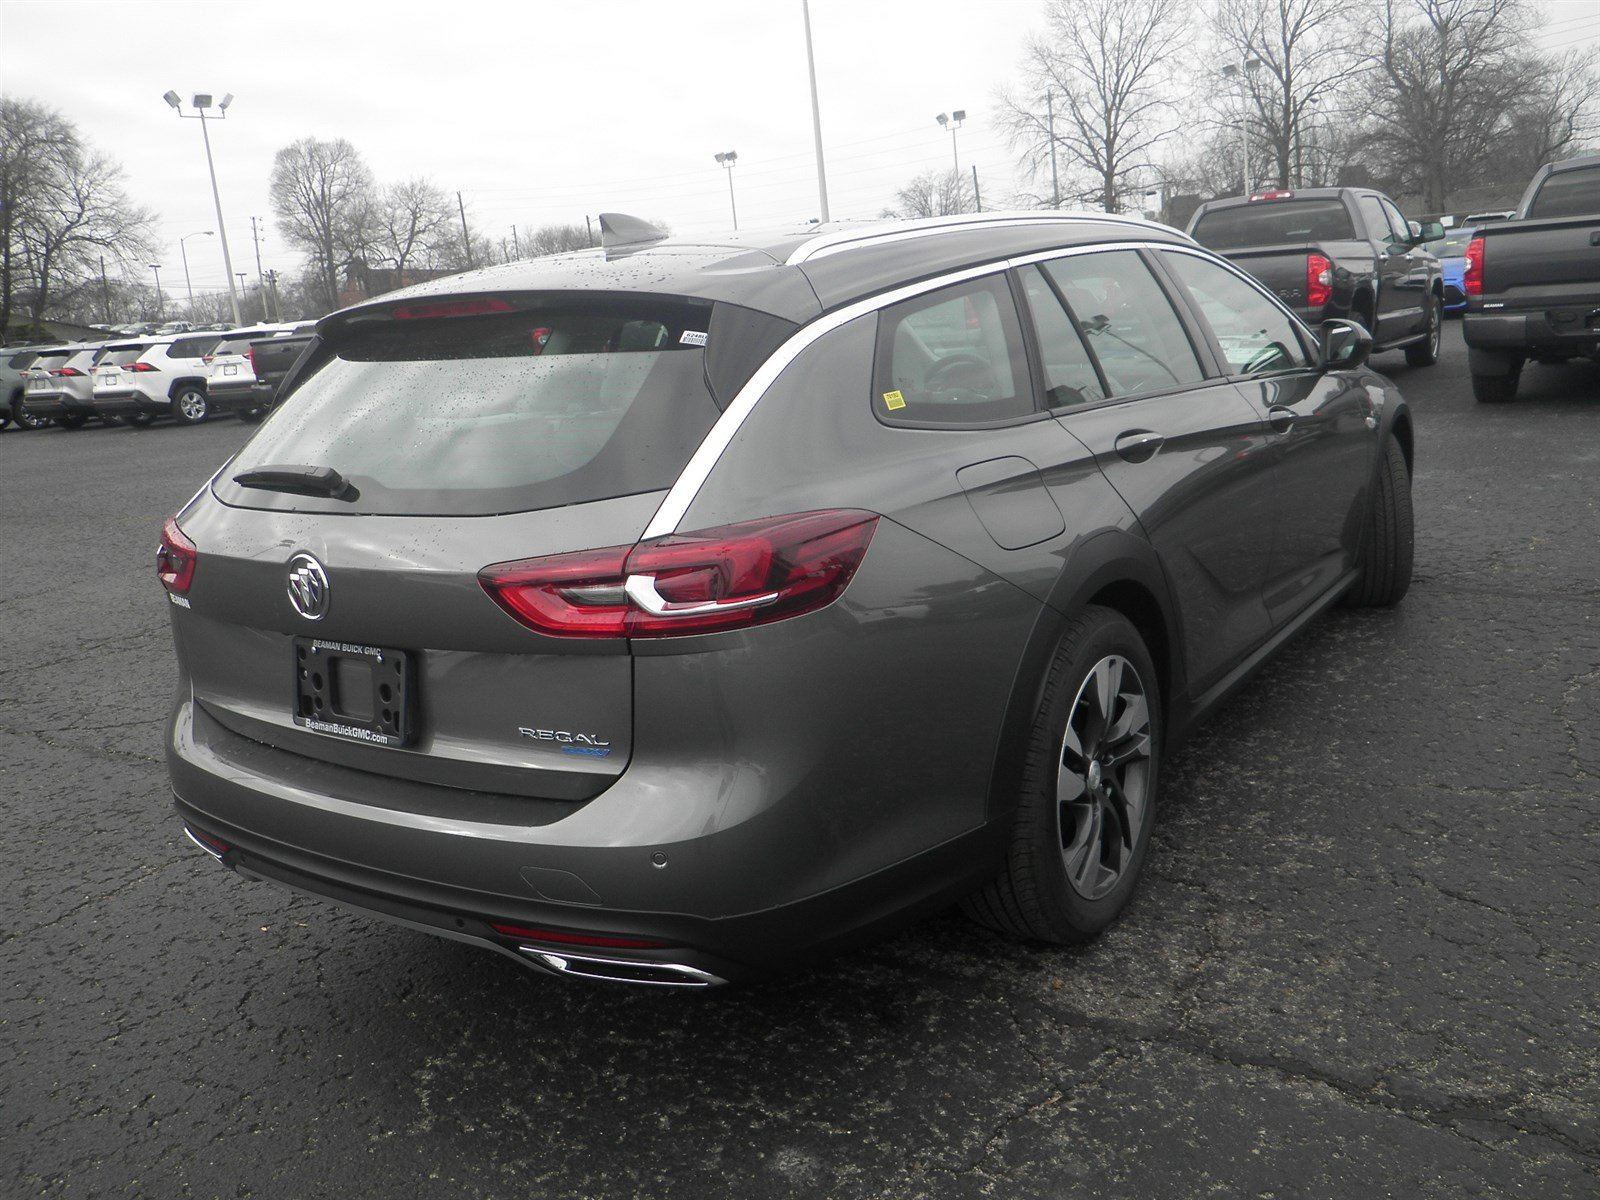 New 2019 Buick Regal Tourx Essence 5dr Wgn In Nashville Kb52